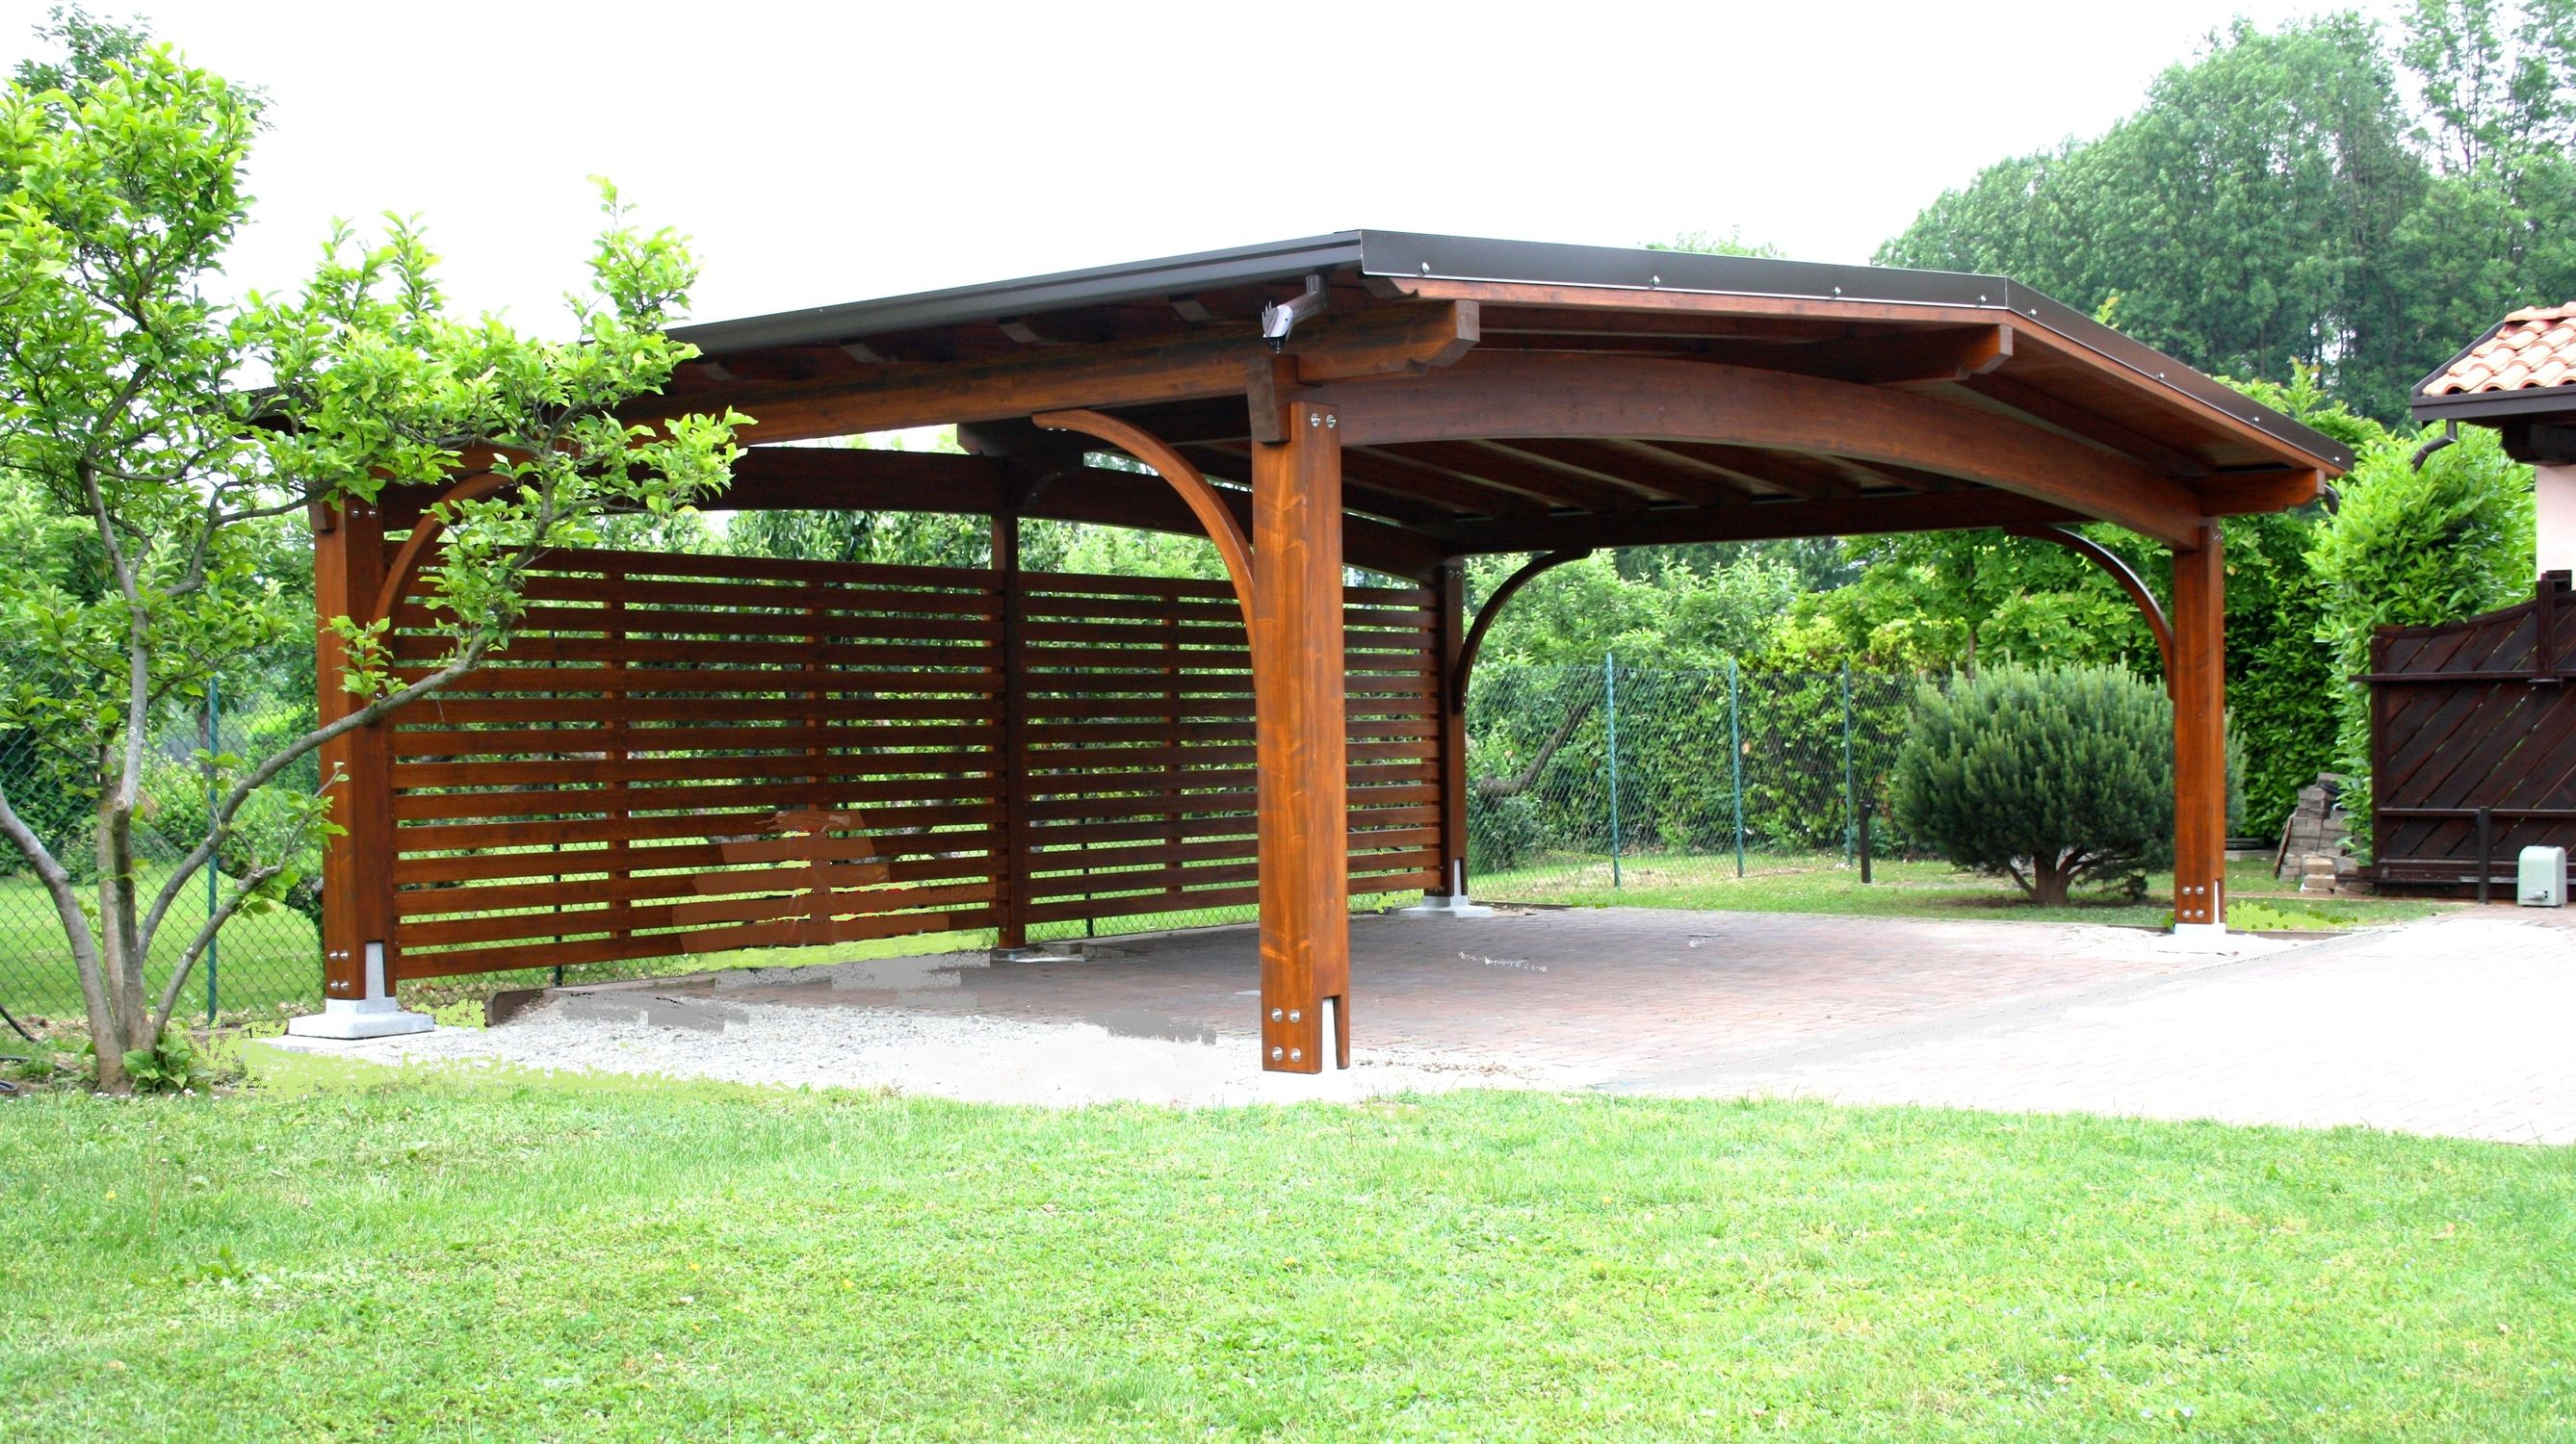 Wooden carport - ARCO - Gazebodesign - Wood Carports Photos